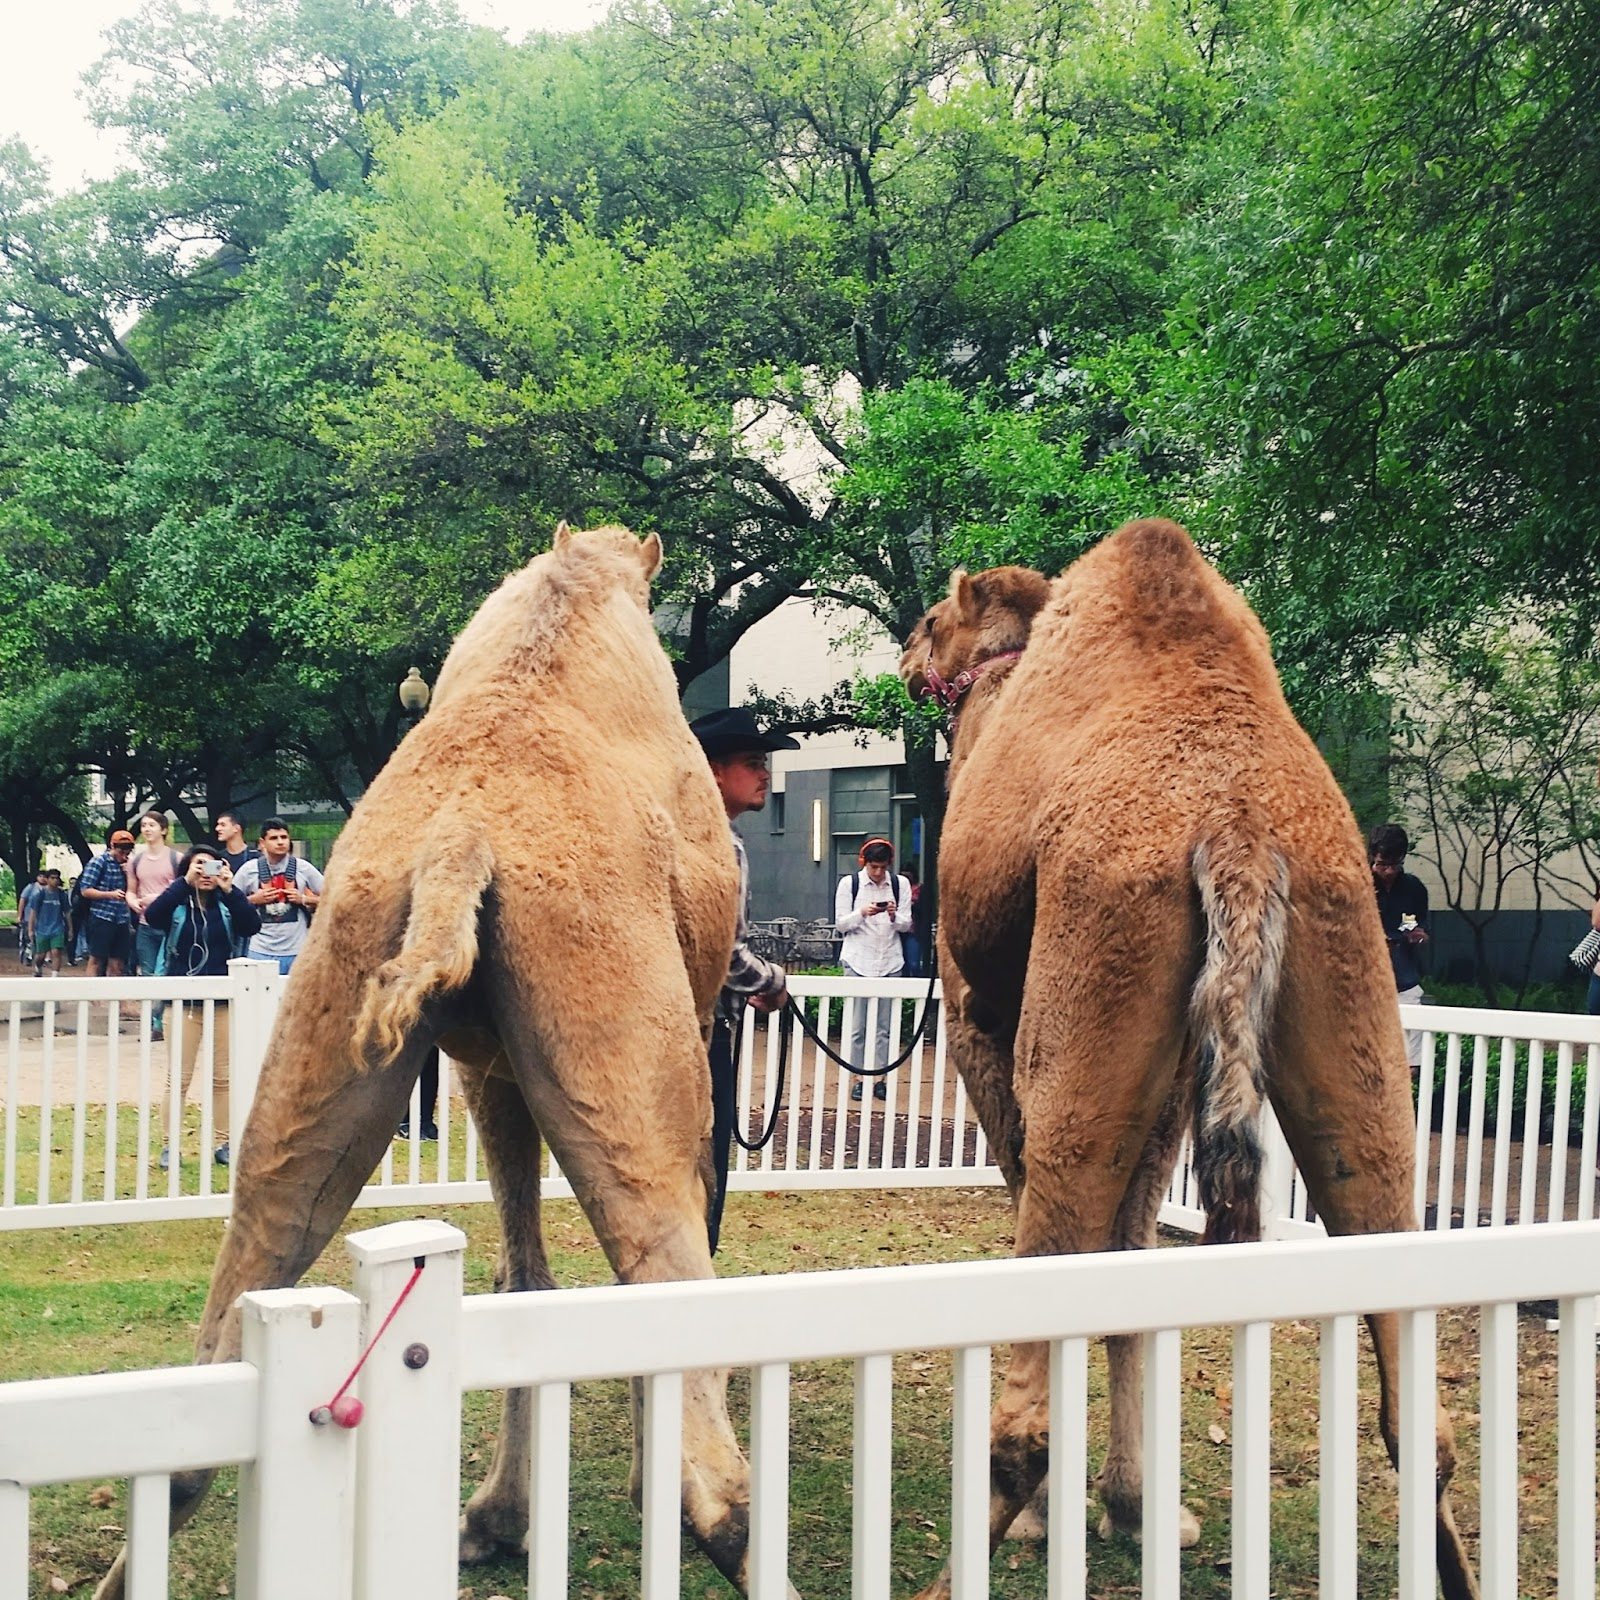 Hump Day at UT